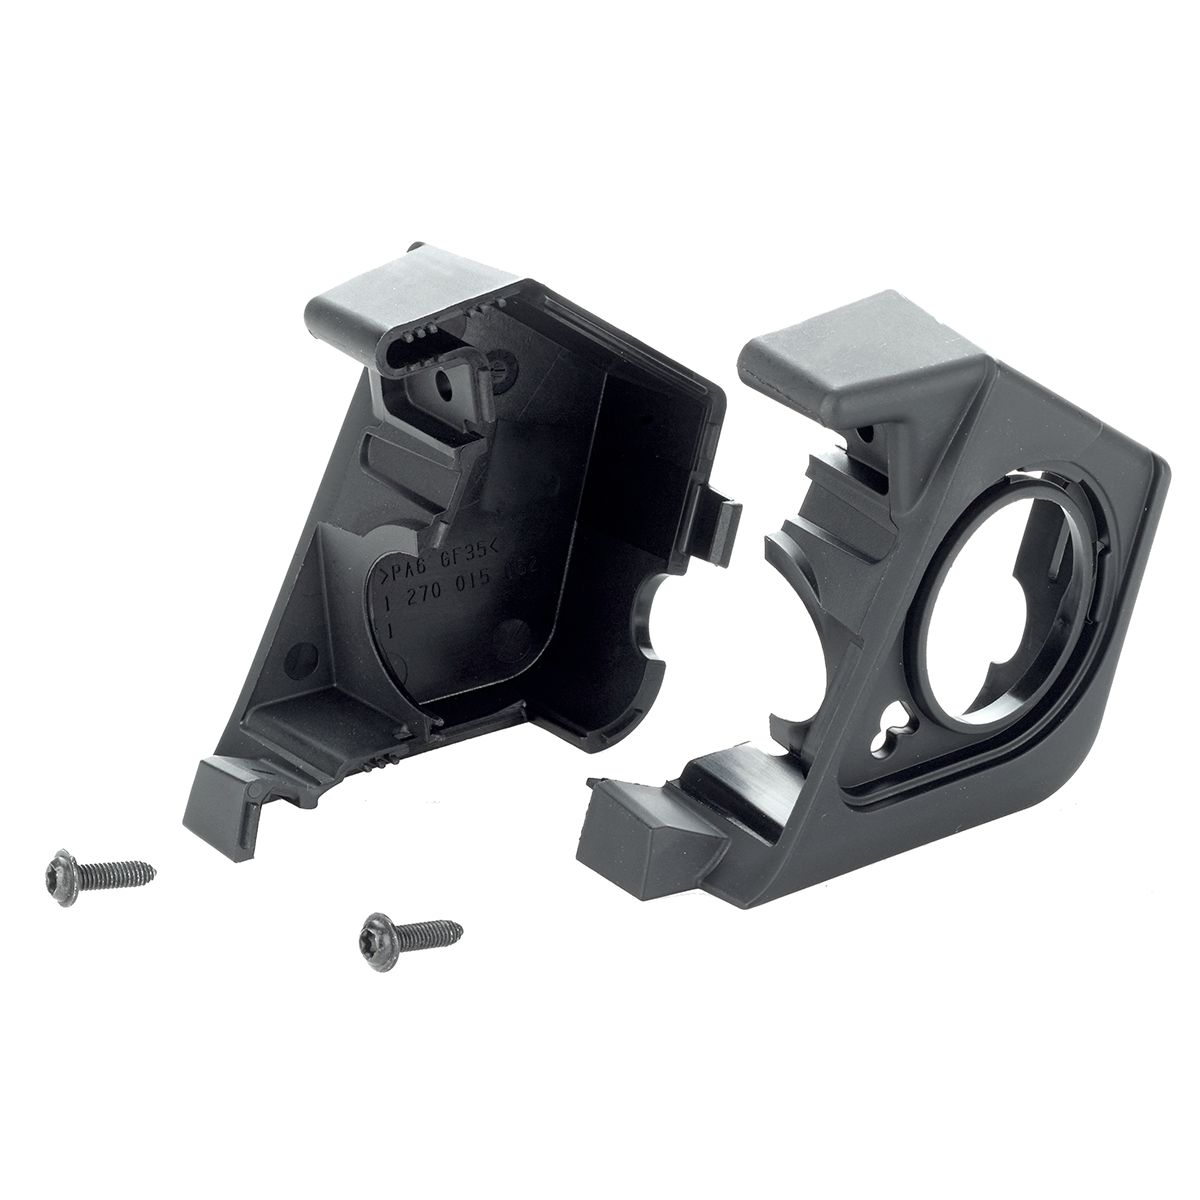 Bosch battery holder kit for frame-mounted e-bike batteries | Computer Battery and Charger